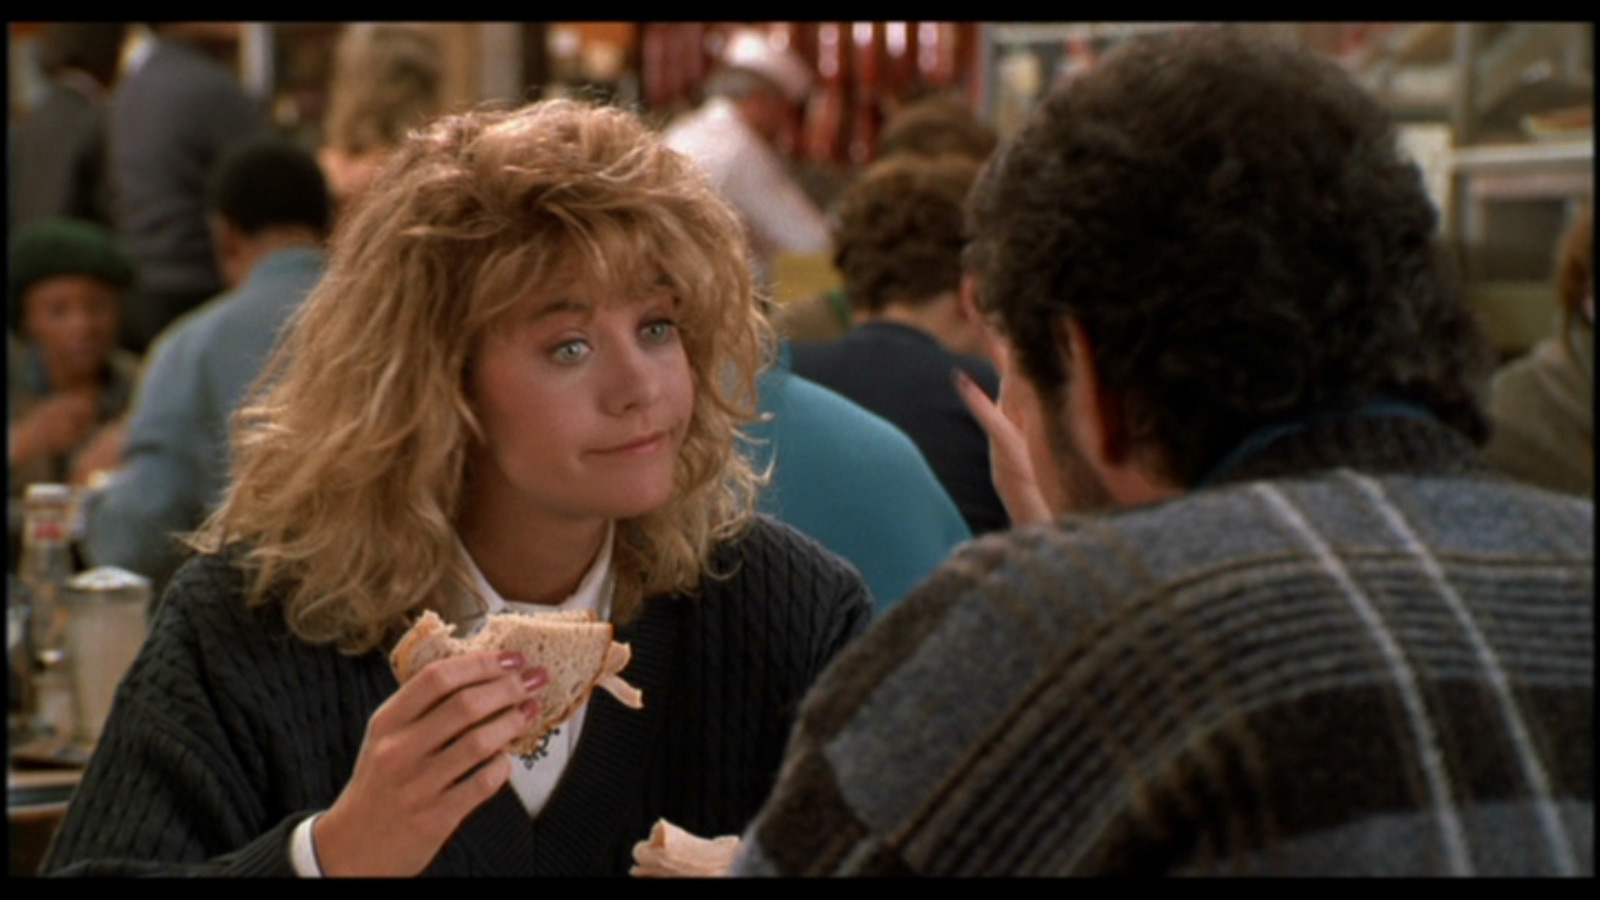 when-harry-met-sally-when-harry-met-sally-2681168-1600-900.jpg